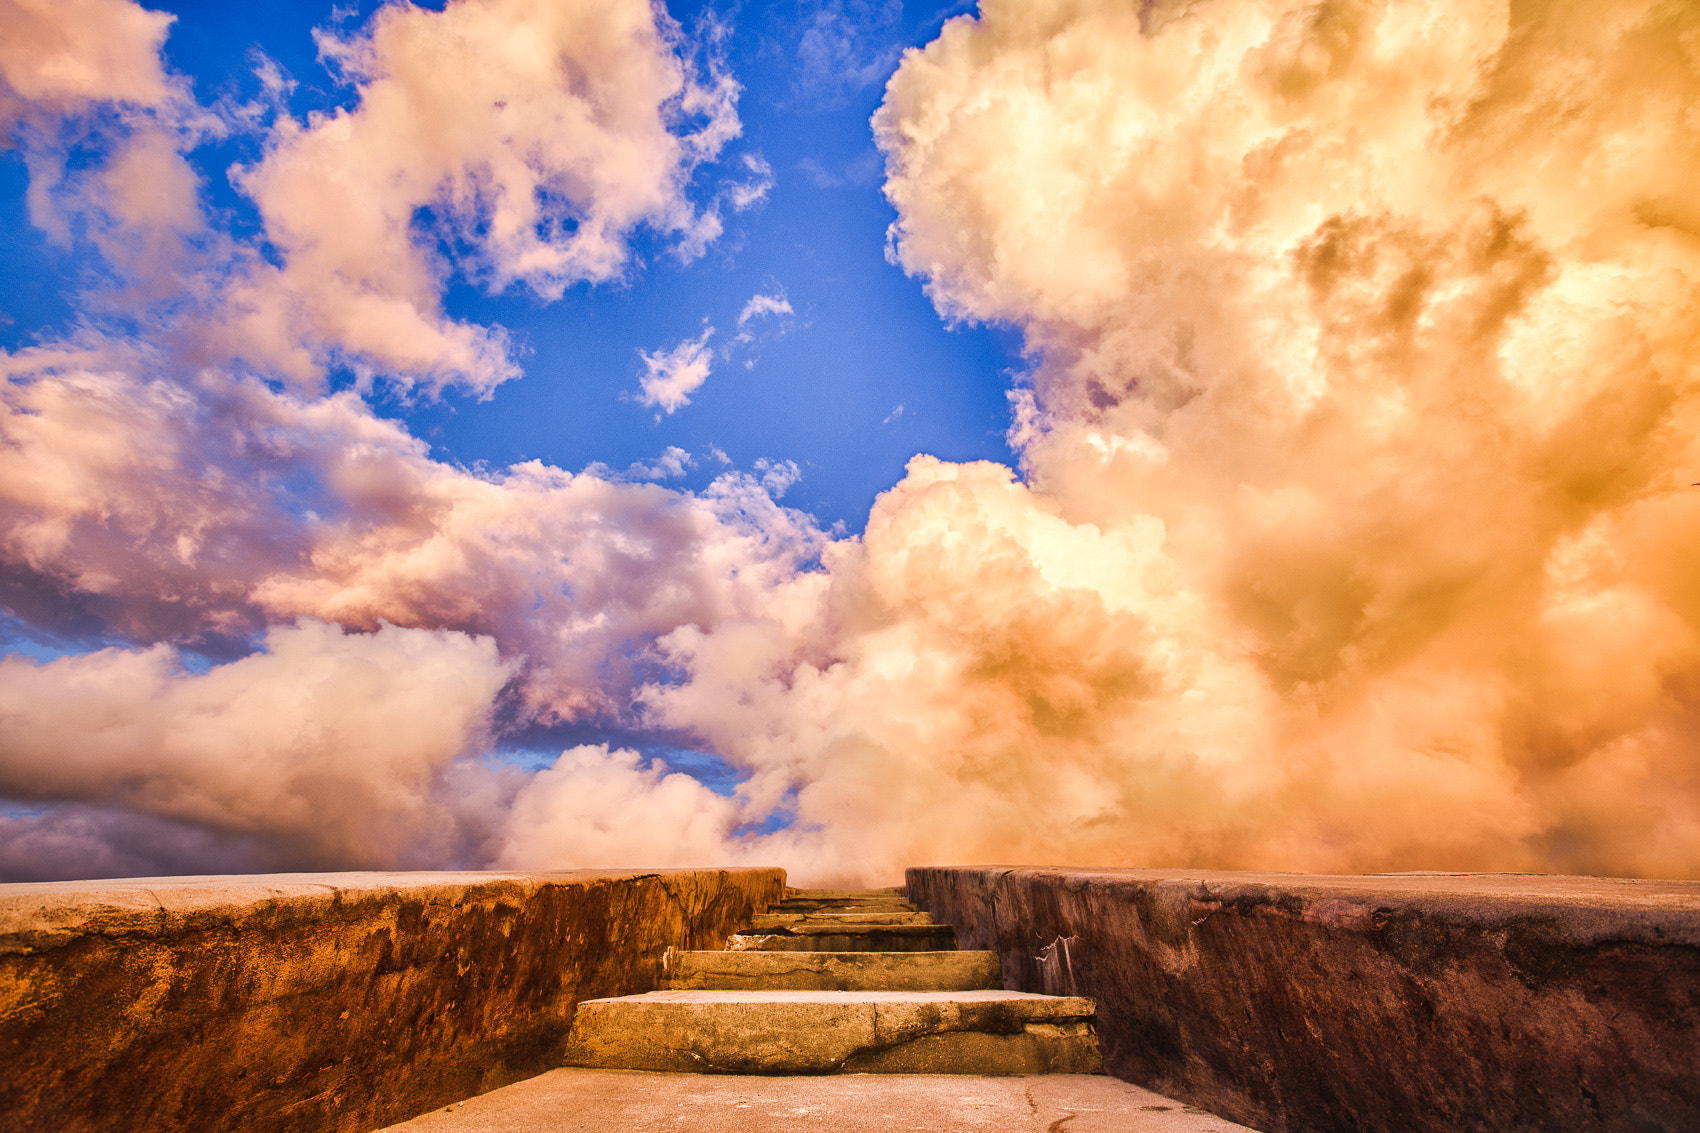 Photograph Stairway by Mike Wiacek on 500px